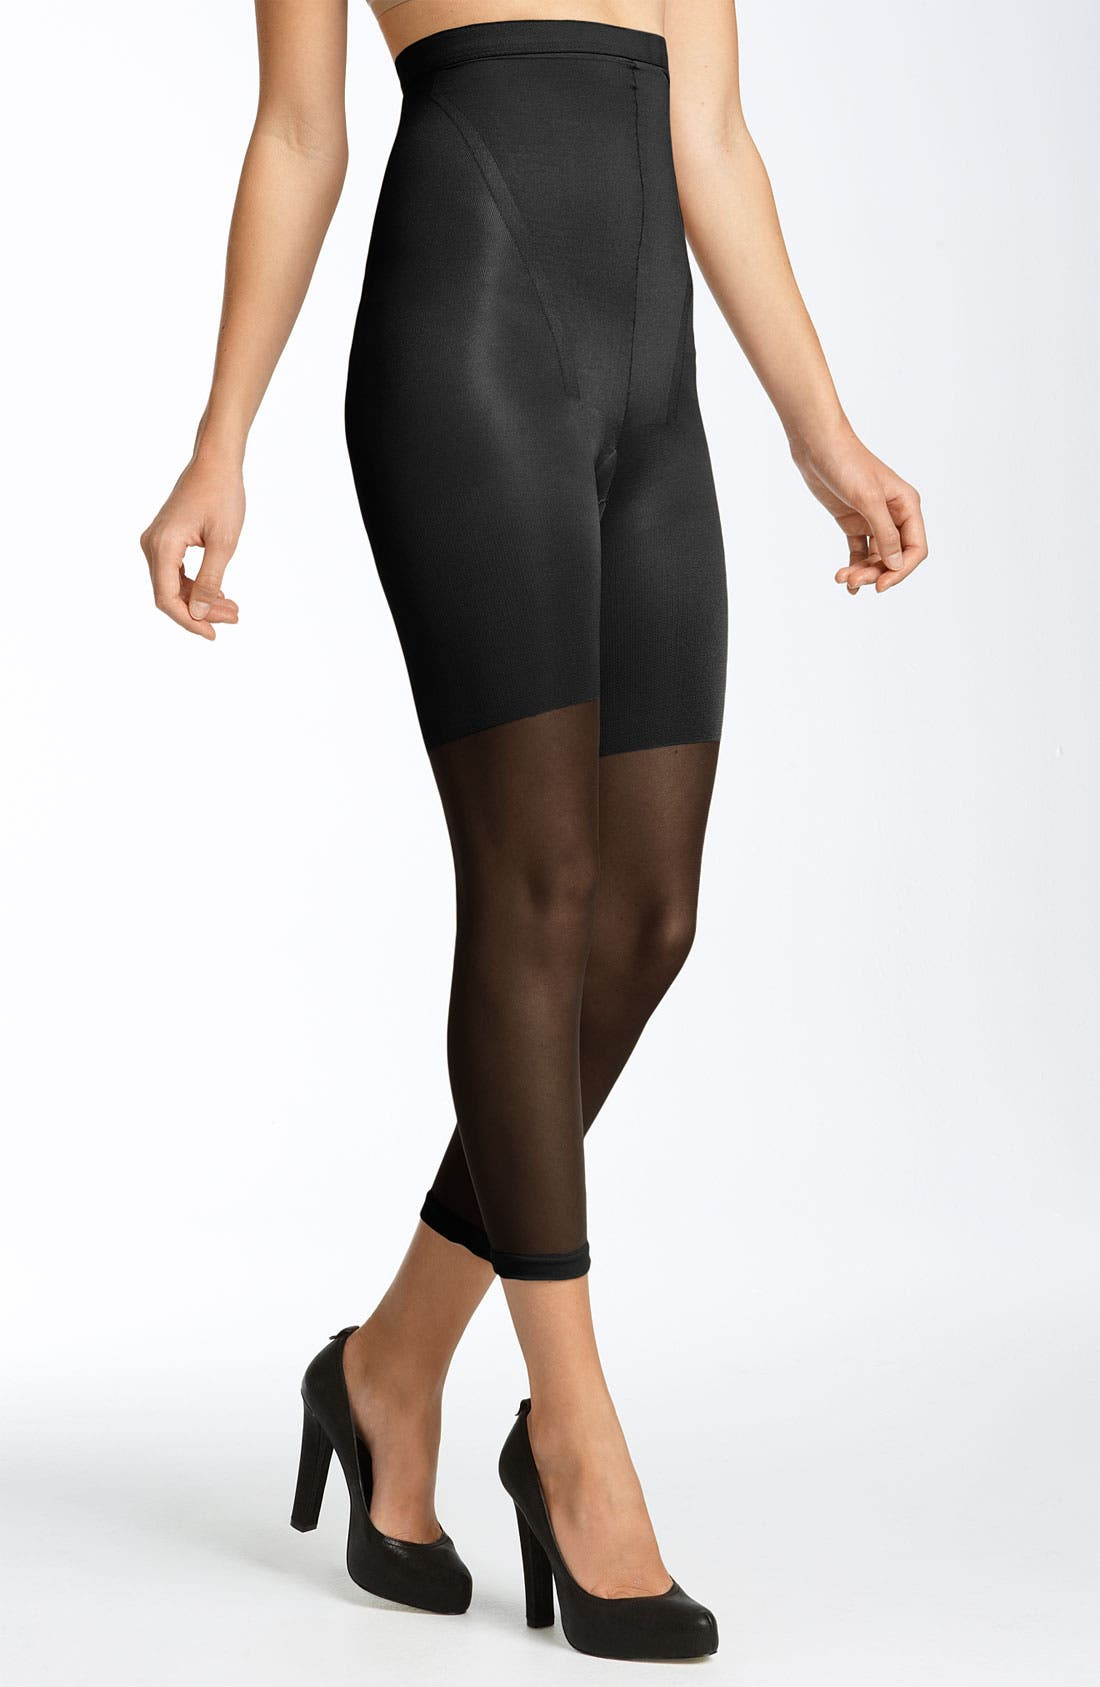 Alternate Image 1 Selected - SPANX® Higher Power High Waist Shaper Capri (Regular & Plus Size)